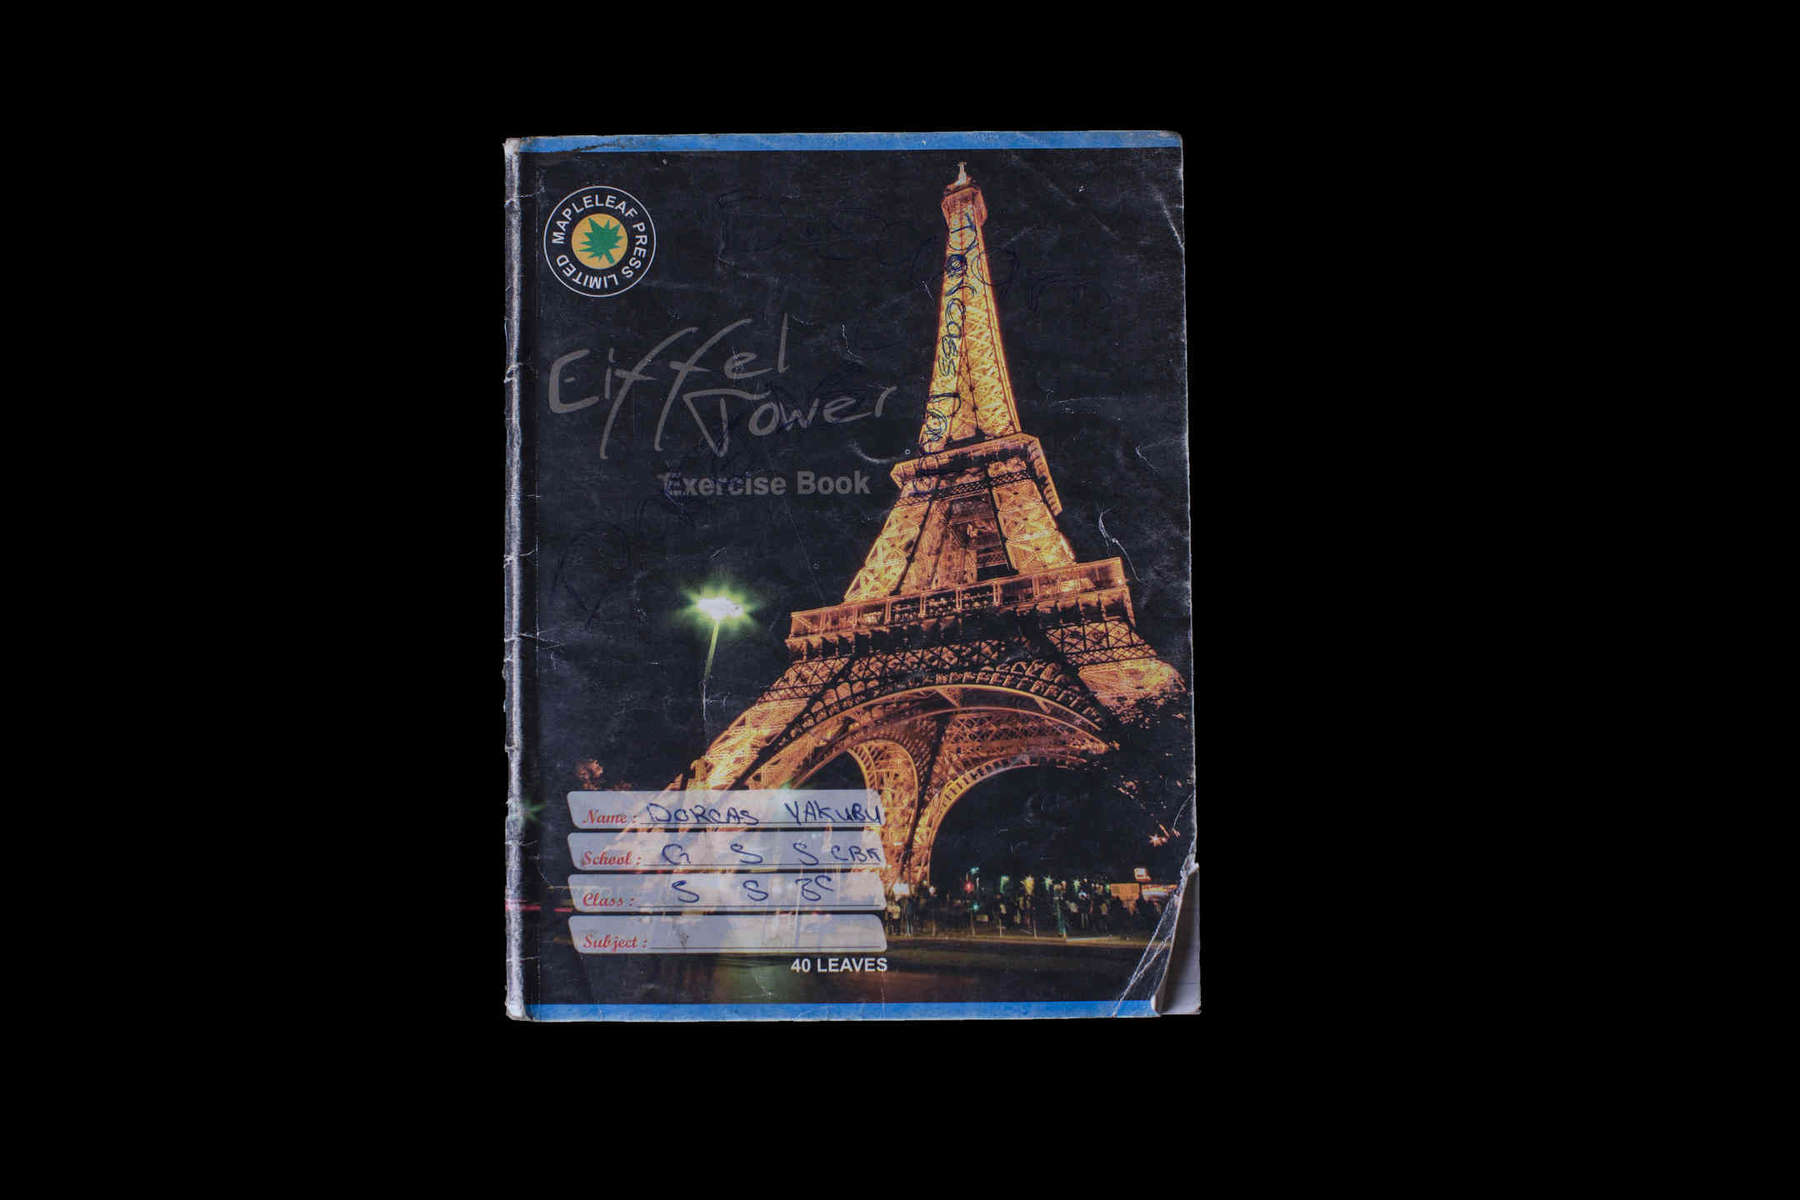 Dorcas Yakubu is 16 years old. Her parents describe her as  shy girl who loved eating tuwo (a local dish). The cover of her notebook has the Eiffel Tower on it.